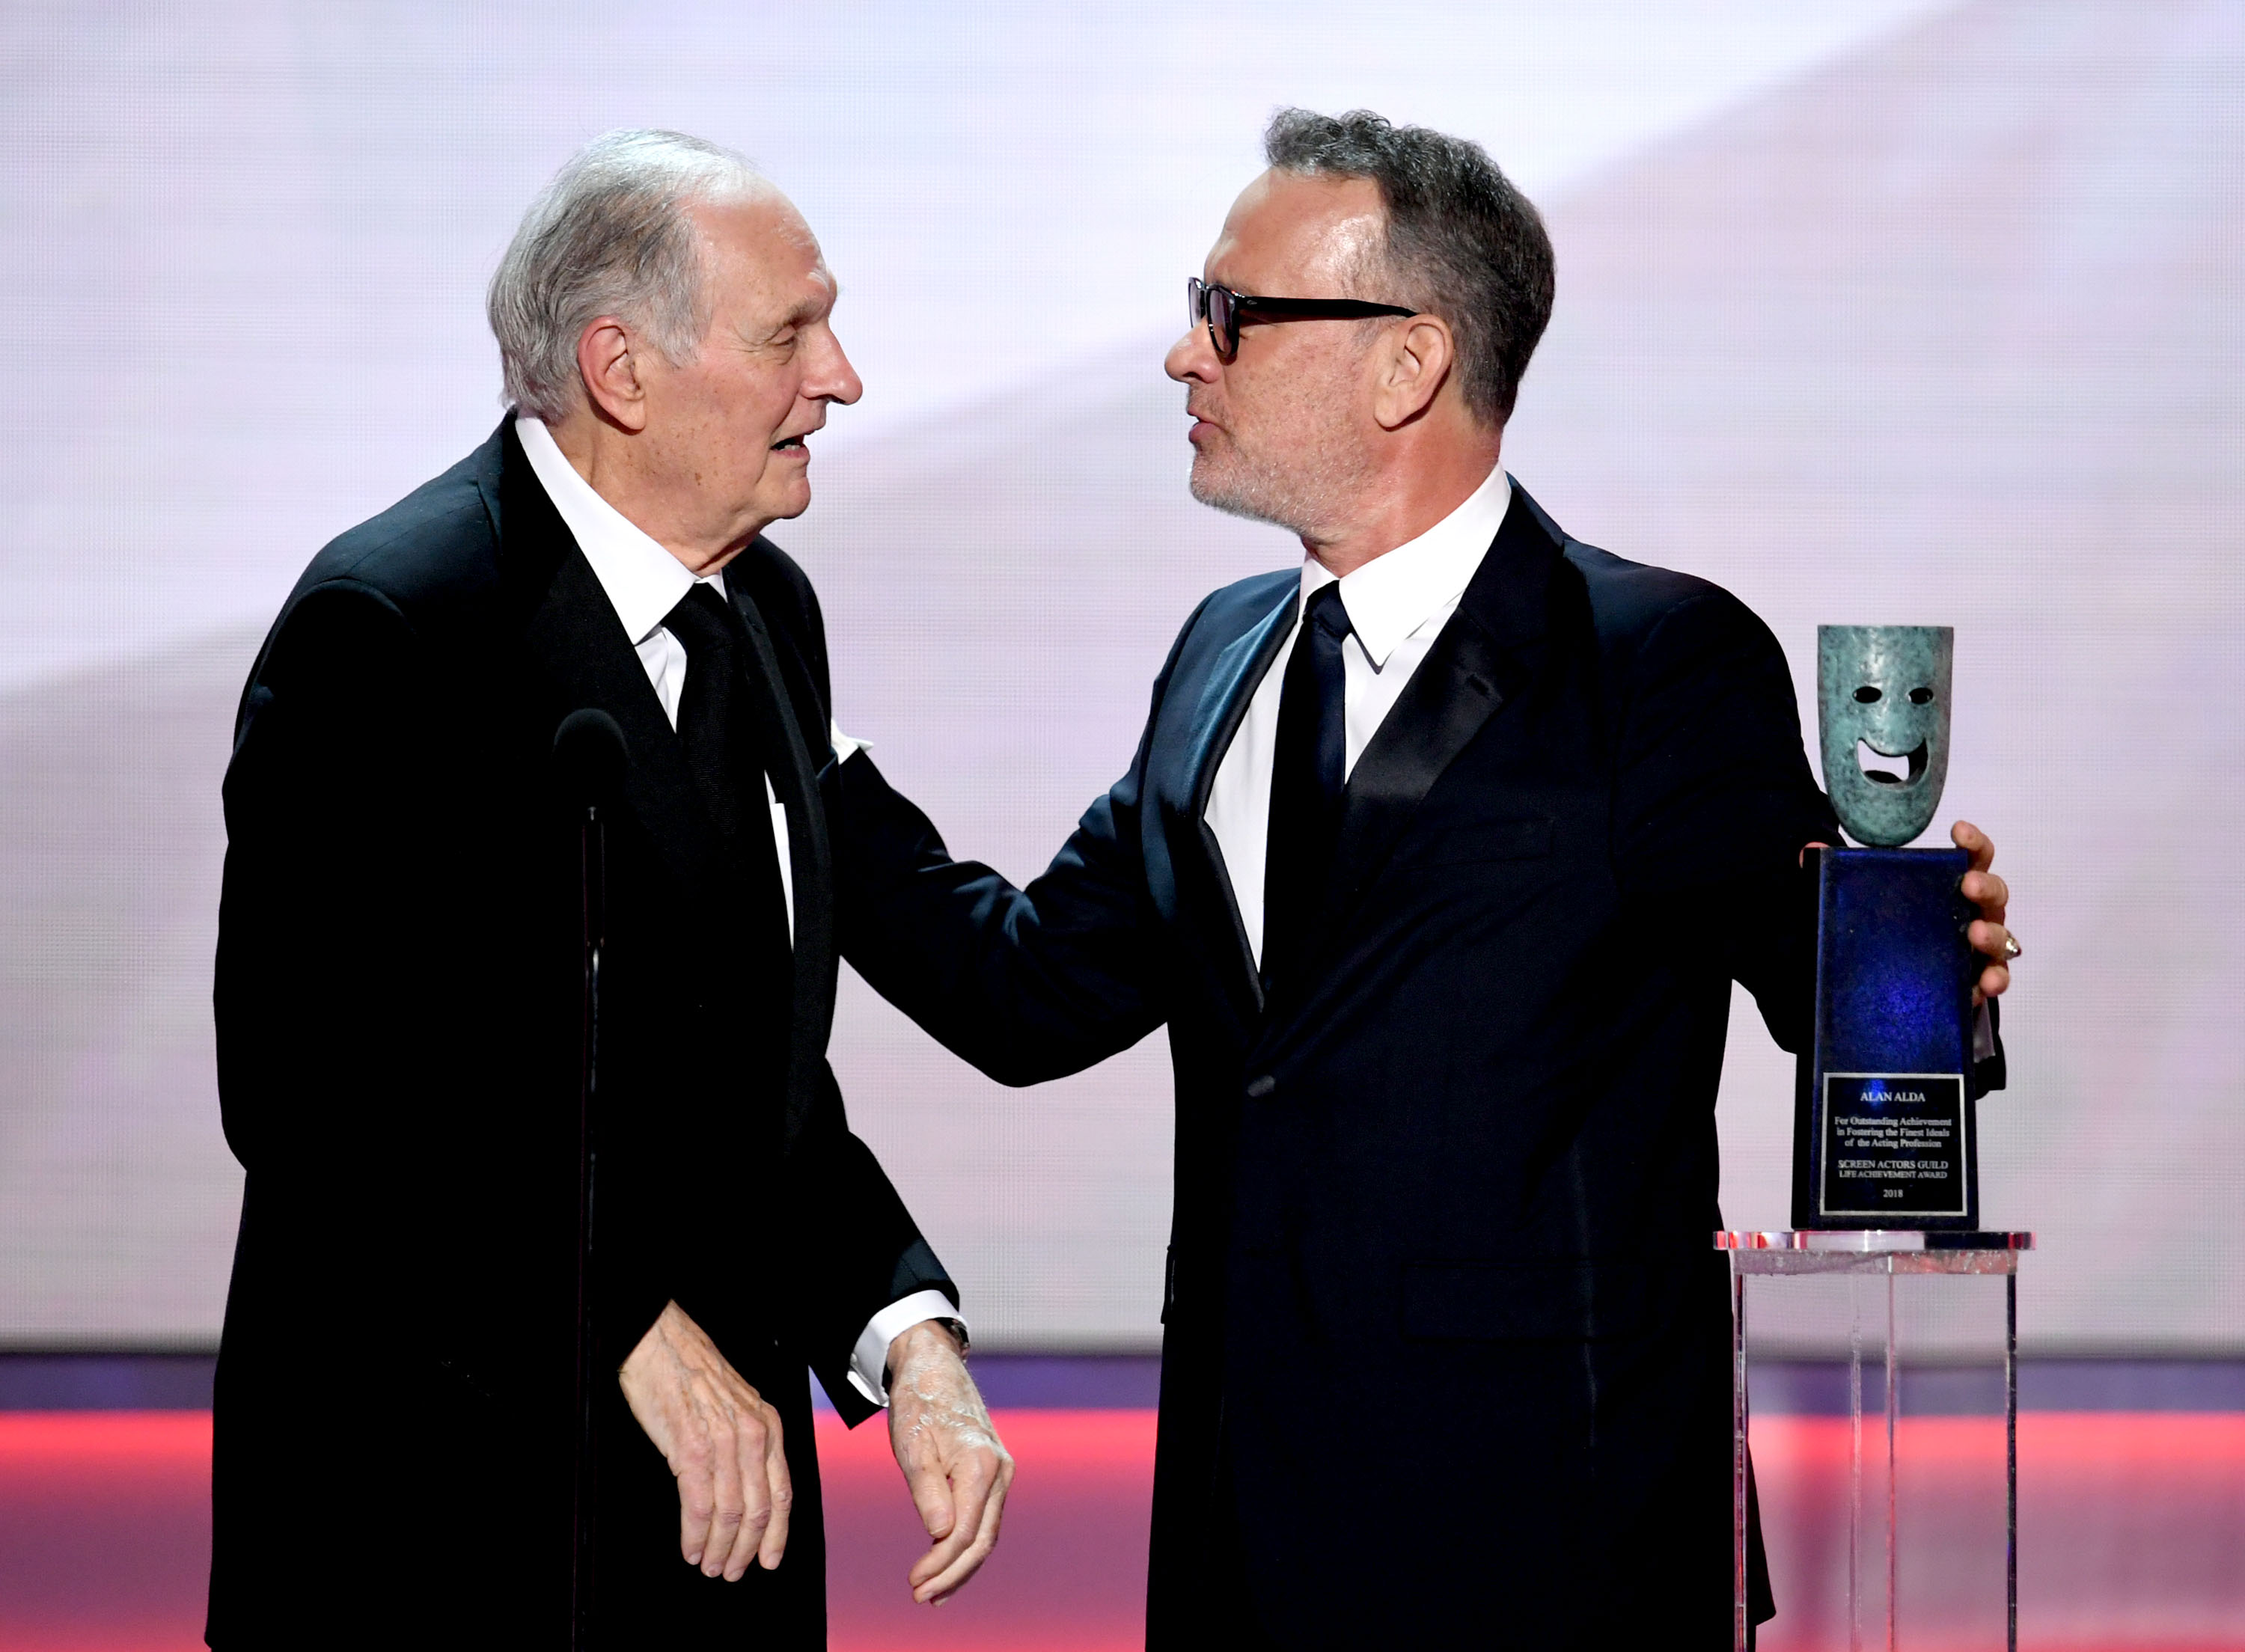 Tom Hanks presents Alan Alda with the 2018 Screen Actors Guild Lifetime Achievement Award. Image Credit: Getty Images